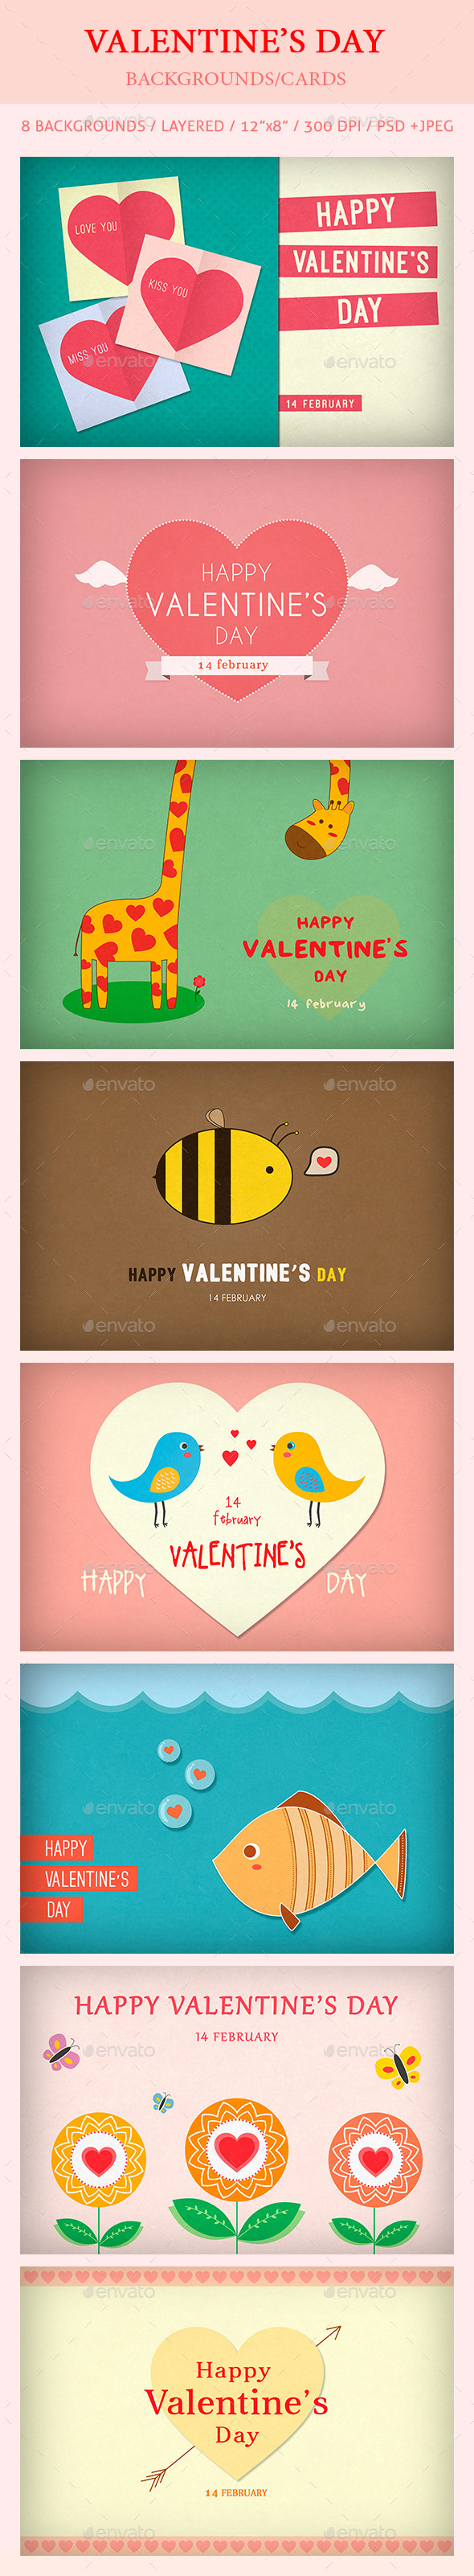 GraphicRiver Valentine s Day Backgrounds Card 10190824